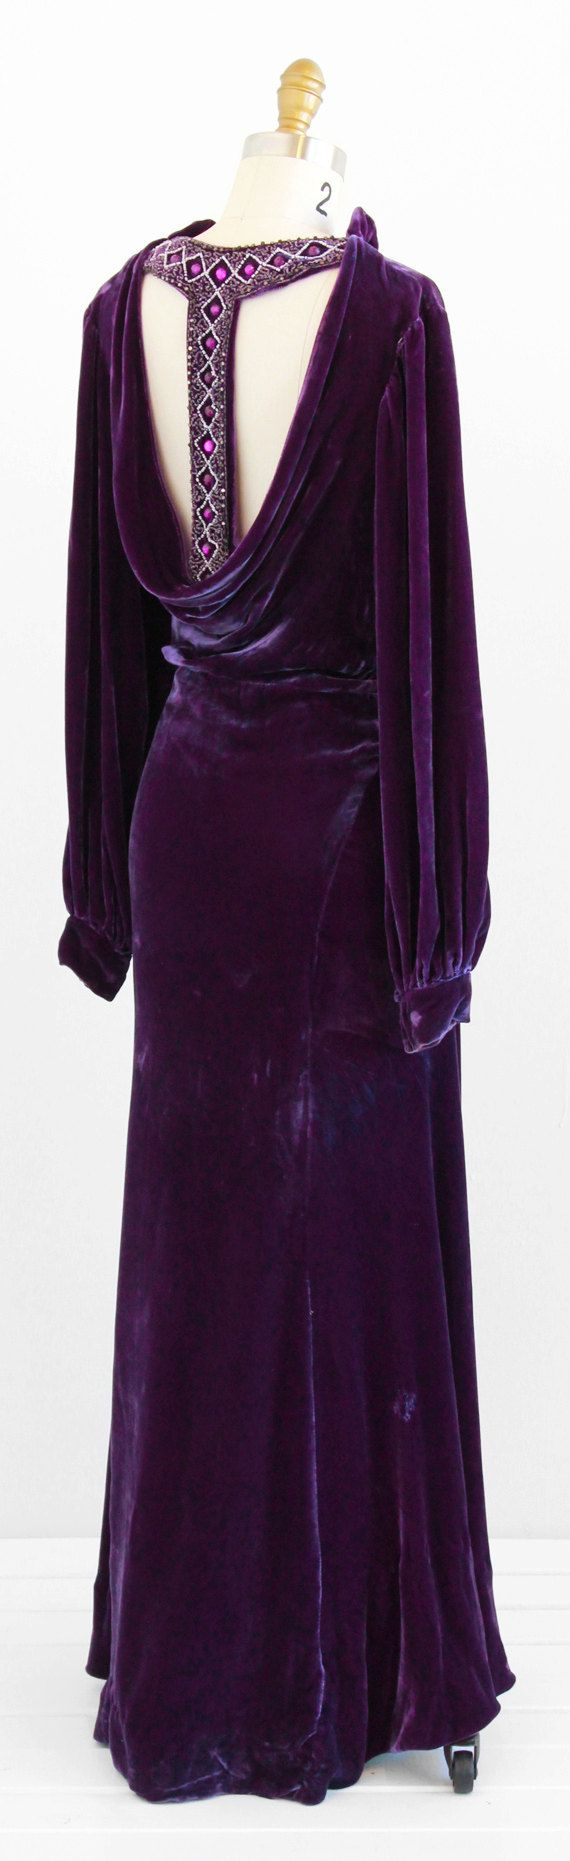 vintage 1930s purple silk velvet evening gown | plunging jeweled back | www.rococovintage.com